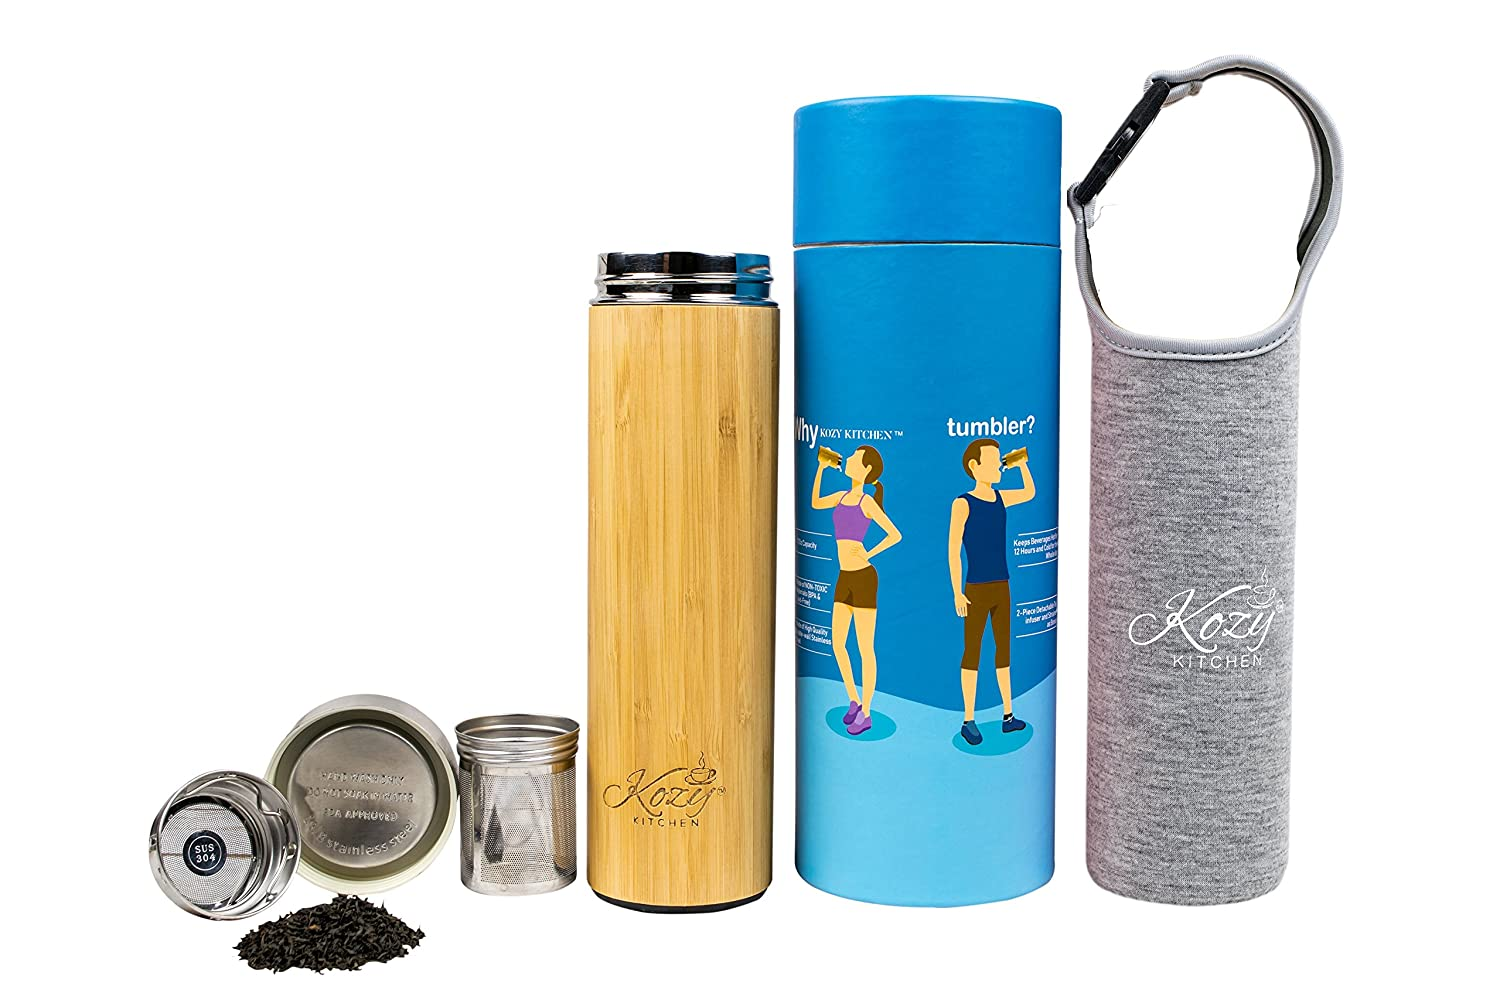 Organic Bamboo Tumbler with Tea Infuser & Strainer by Kozy Kitchen| 17oz Stainless Steel Water Bottle| Insulated BPA-Free Travel Mug With Mesh Filter for Brewing Loose Leaf |Gift For Tea Lovers (Gray) Kozy Sweet Home BT-2509